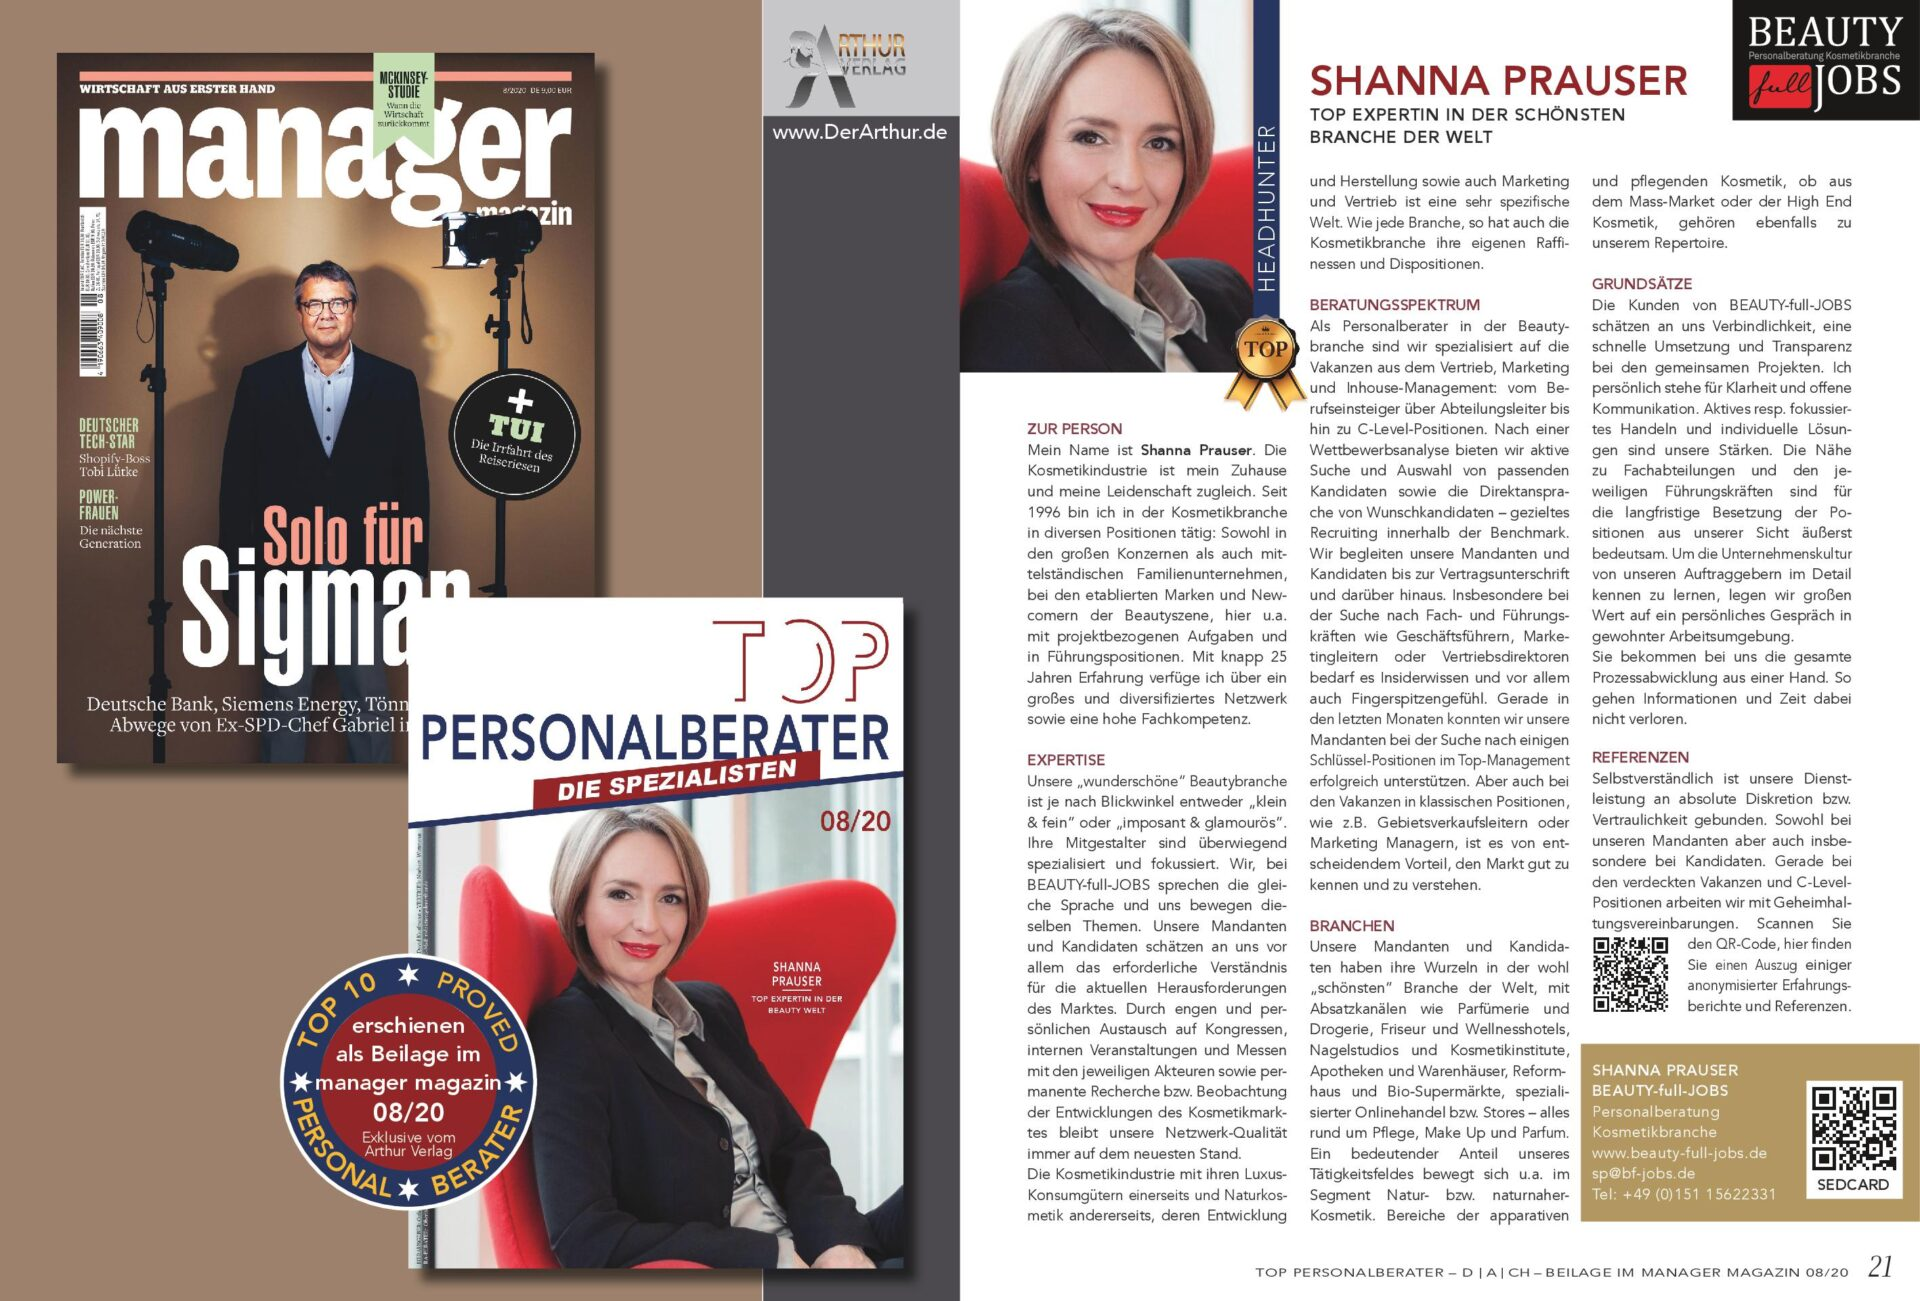 Shanna Prauser ist TOP-Personalberaterin 08/2020 - manager magazin